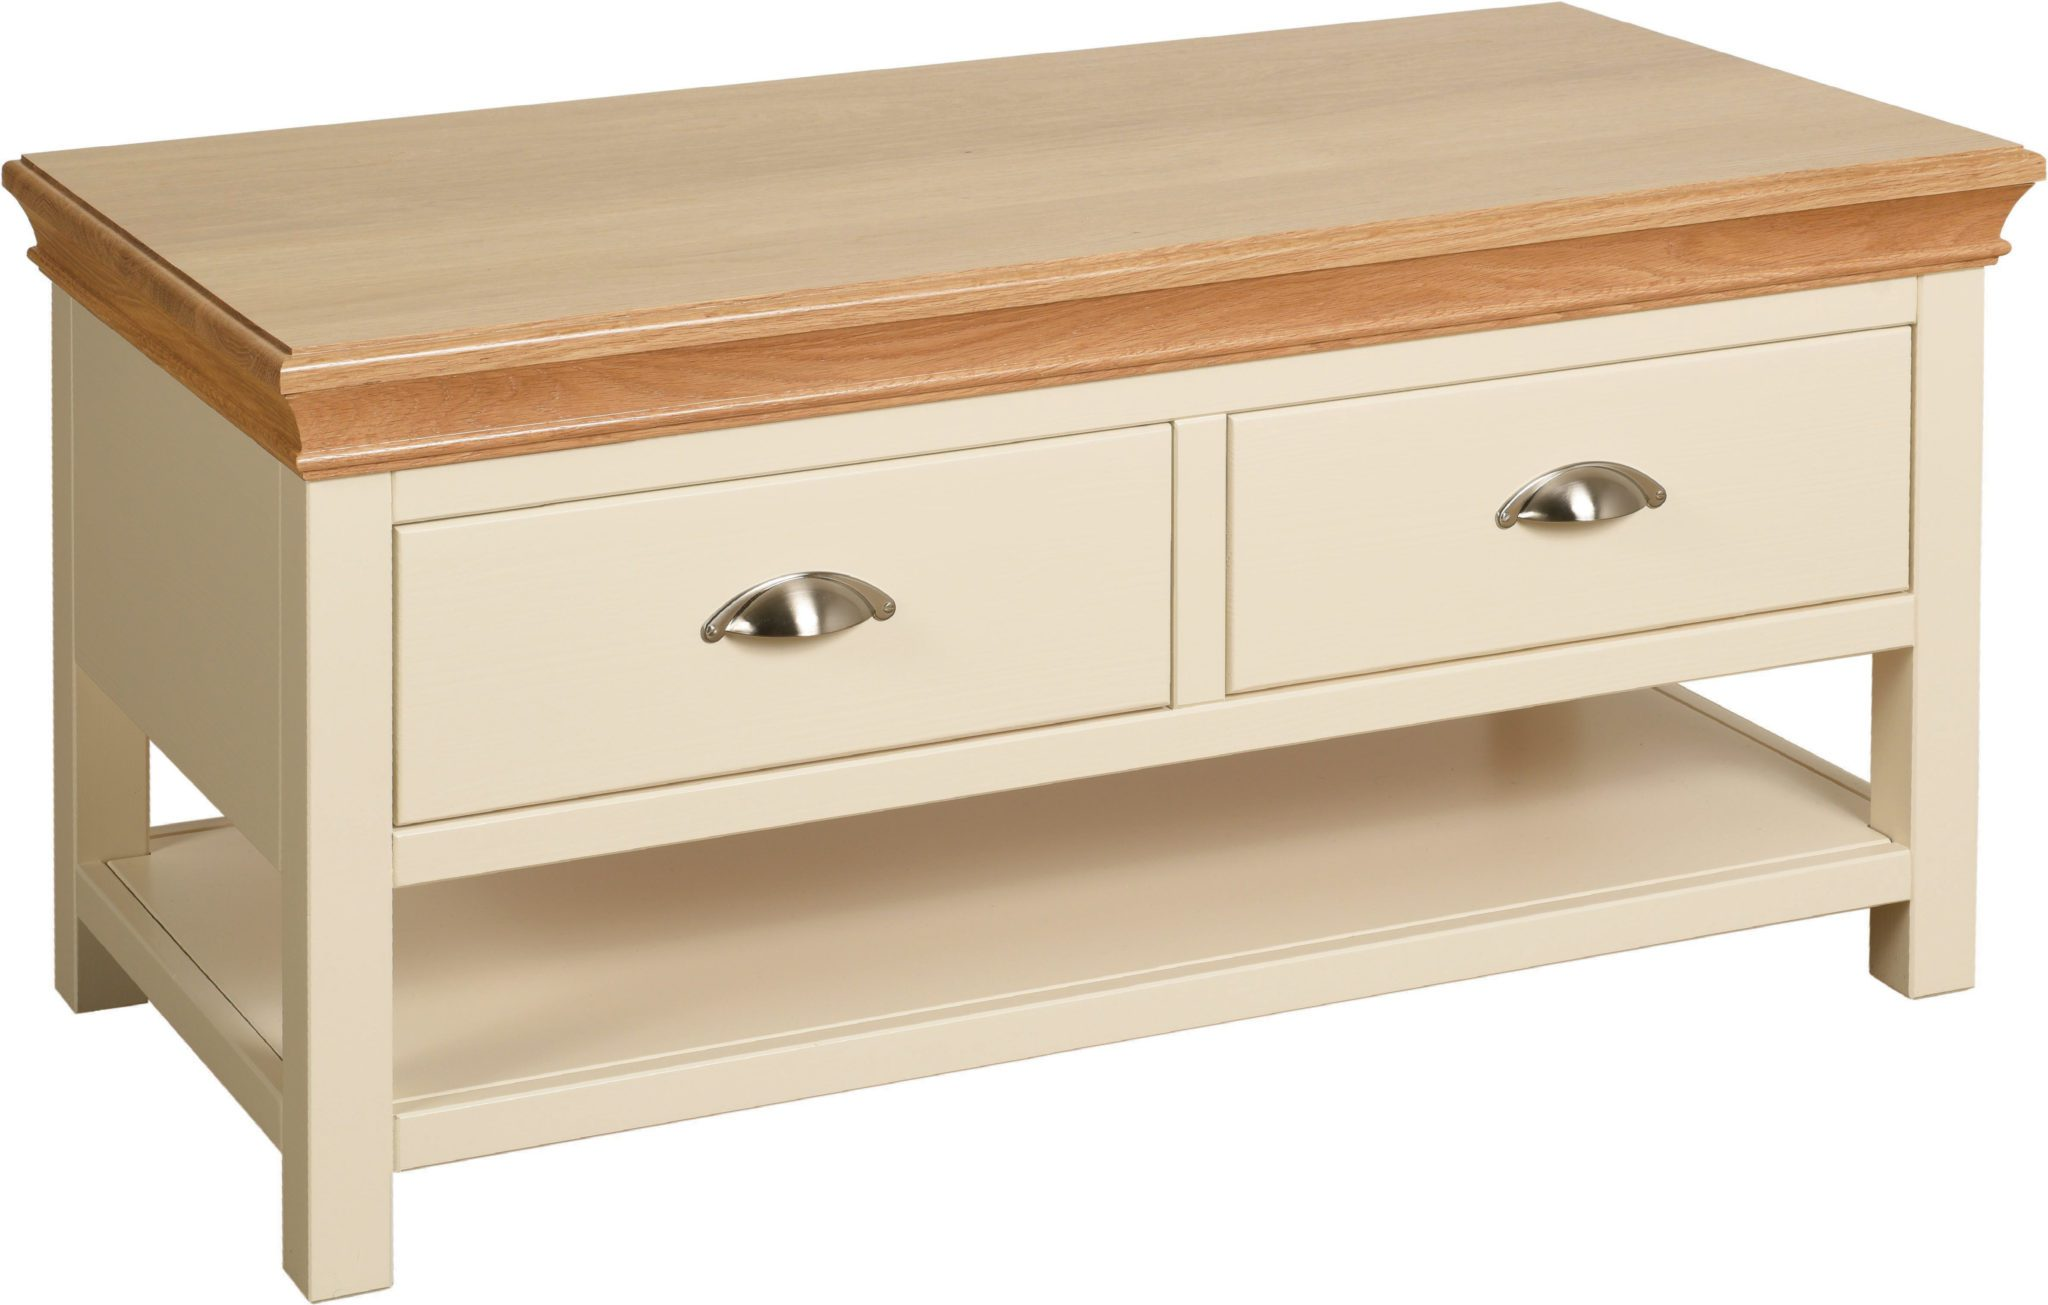 Lundy Painted Coffee Table With 2 Drawers, solid oak moulded top drawers come out from either side LT15